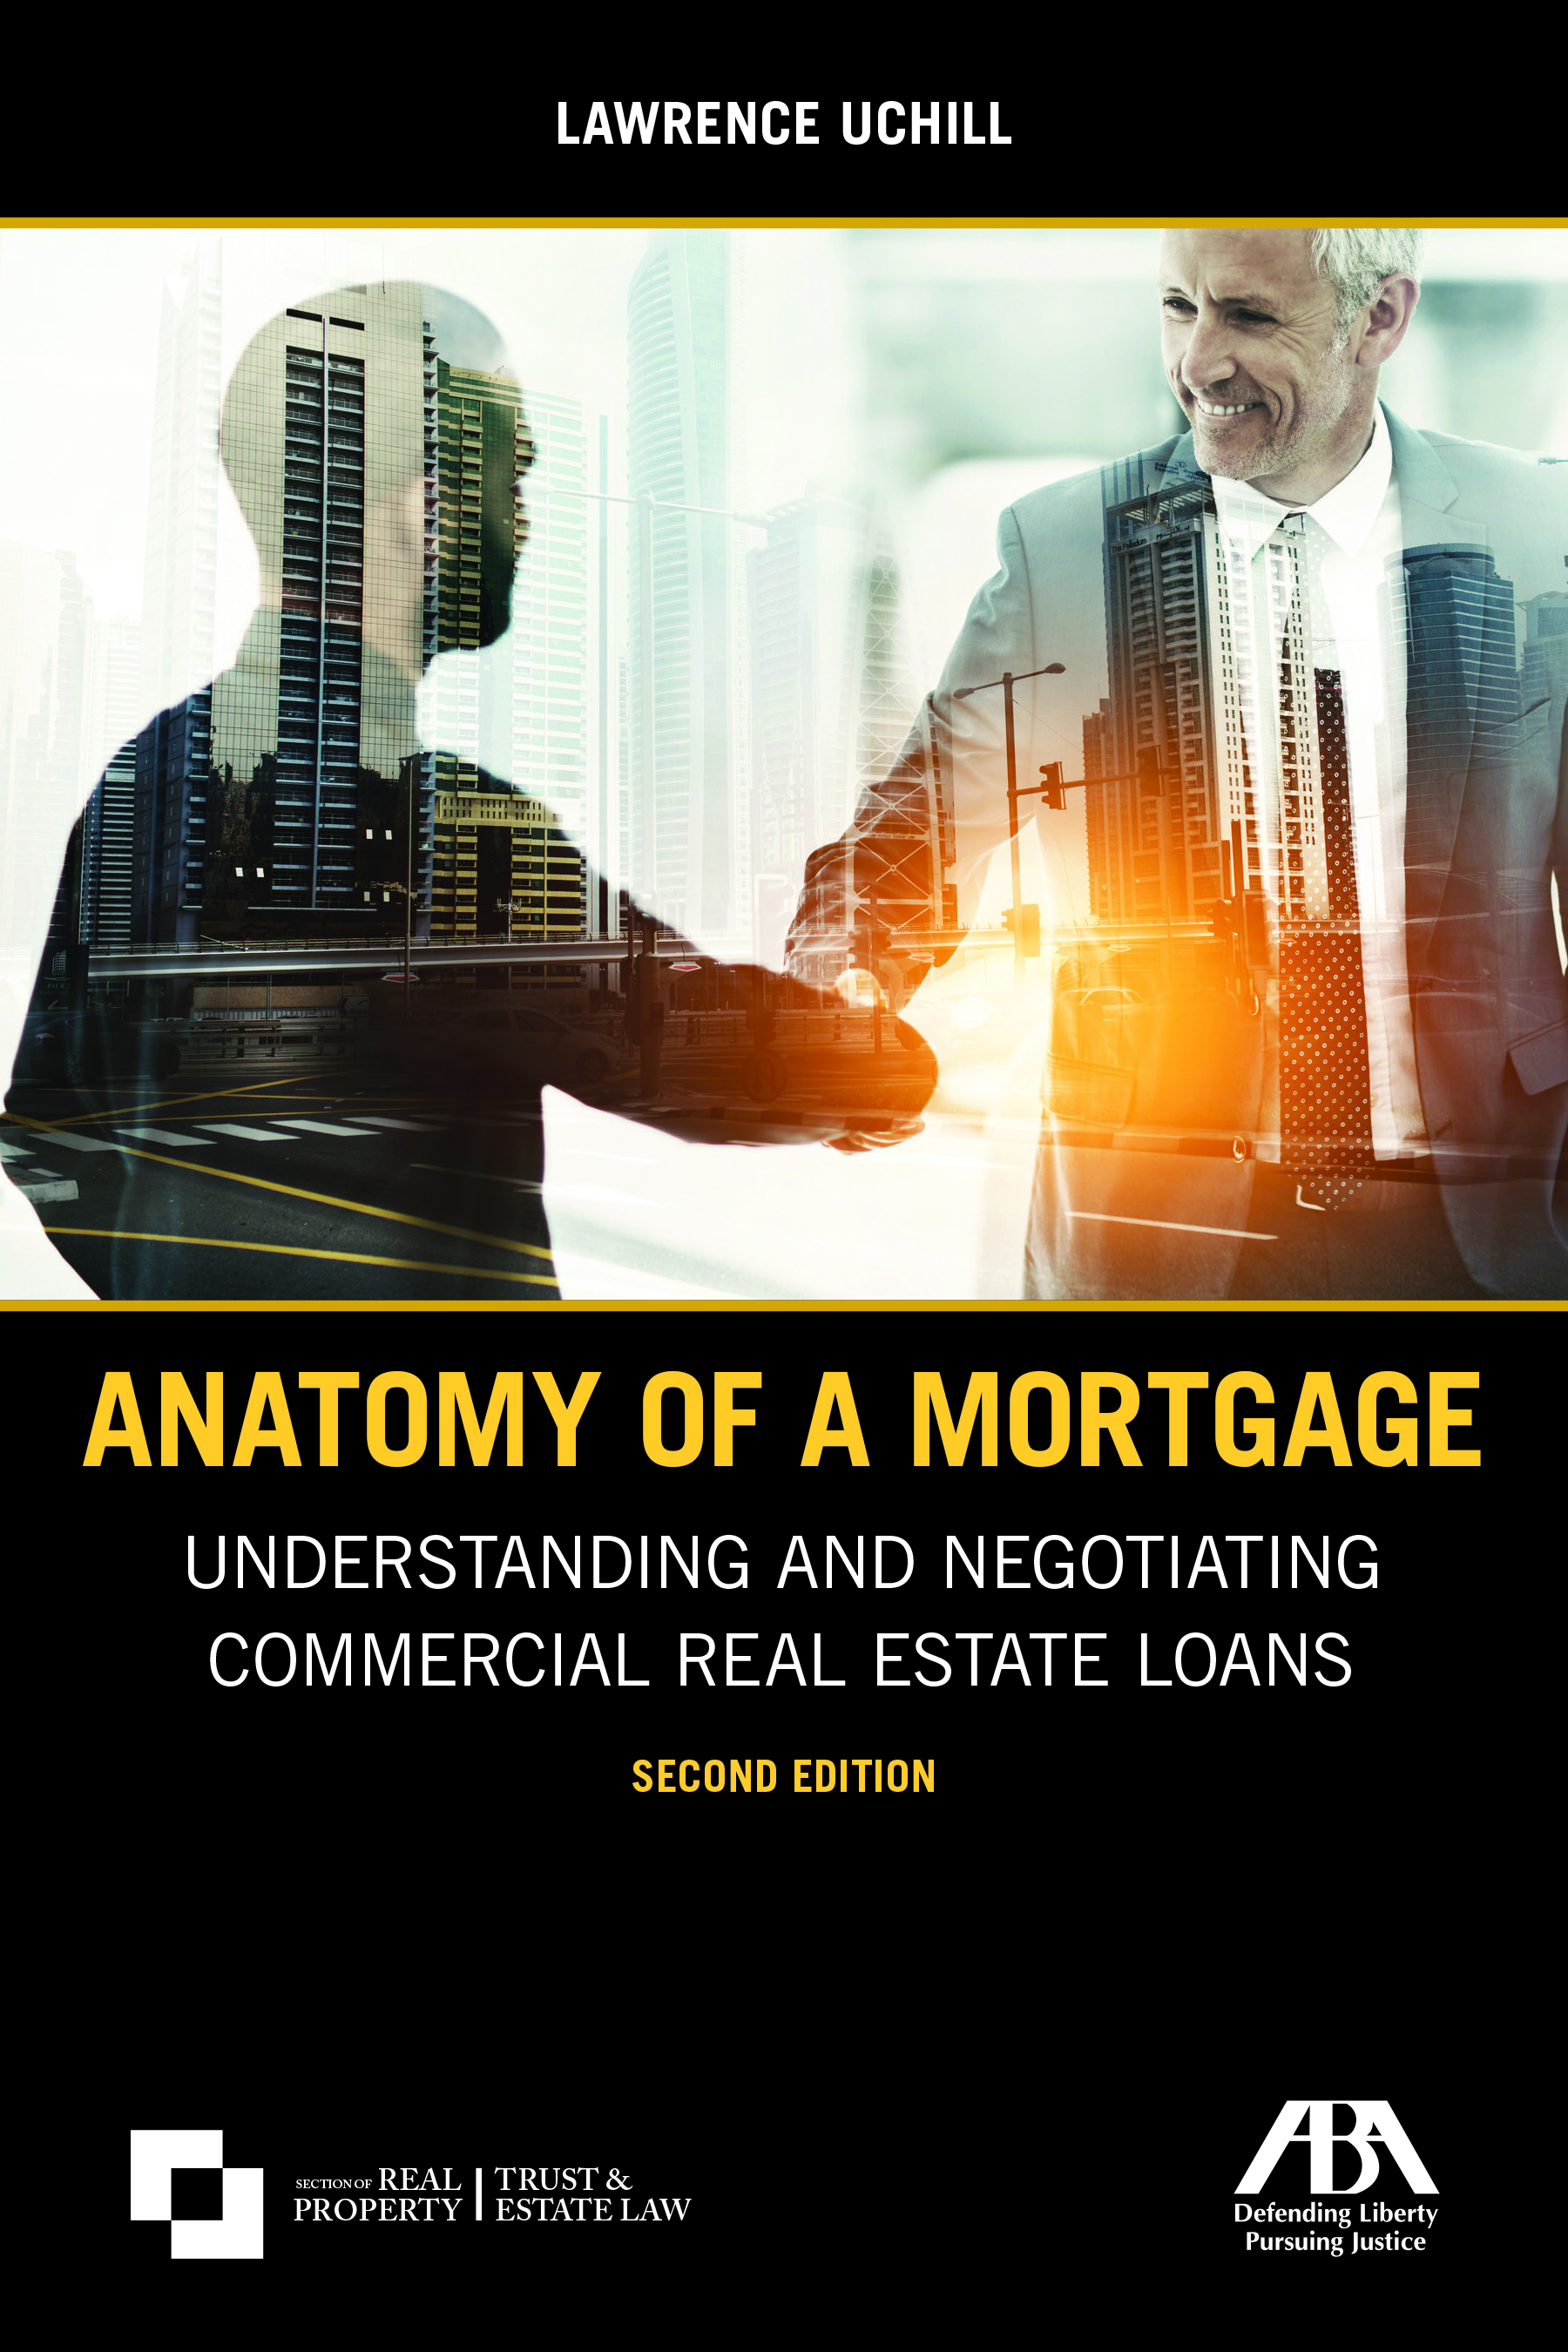 Anatomy of a Mortgage: Understanding and Negotiating Commercial Real Estate Loans, Second Edition